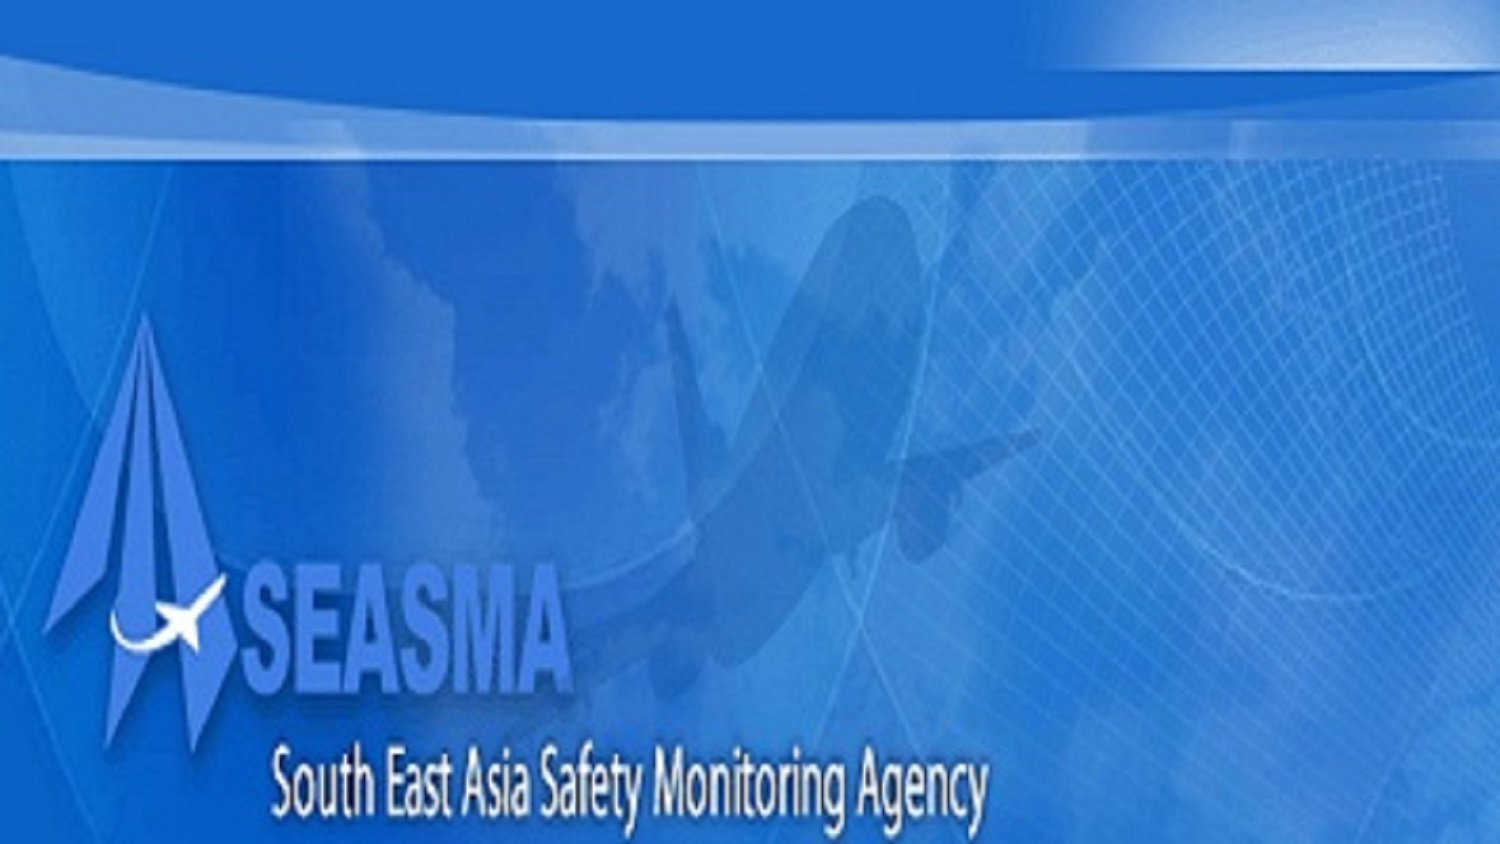 South East Asia Safety Monitoring Agency